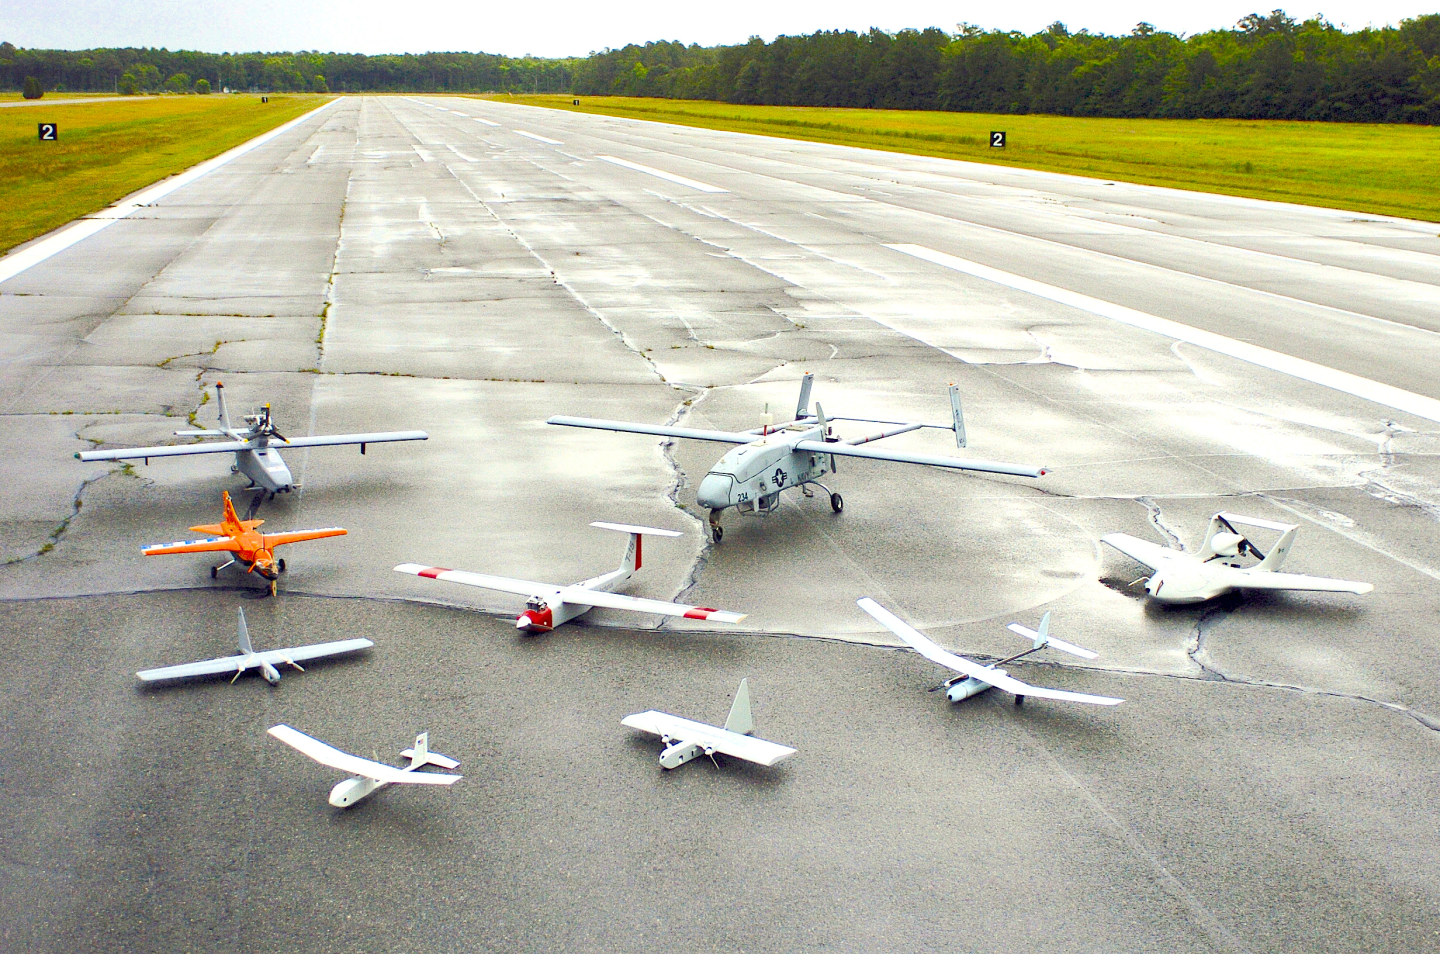 U.S. UAV demonstrators in 2005